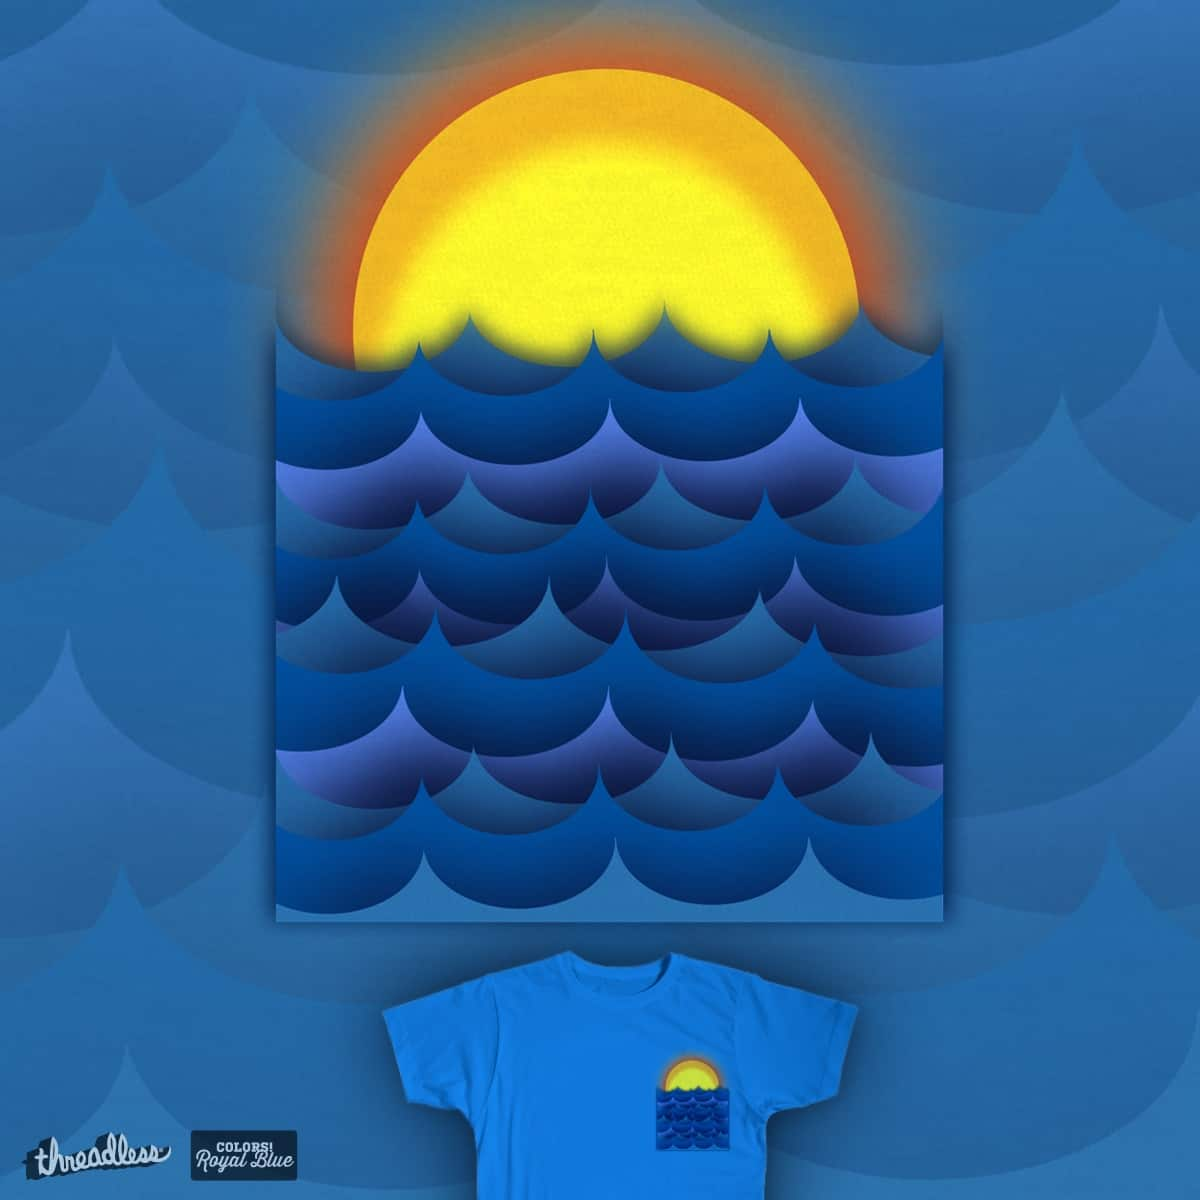 Summer Pocket by ArTrOcItY on Threadless